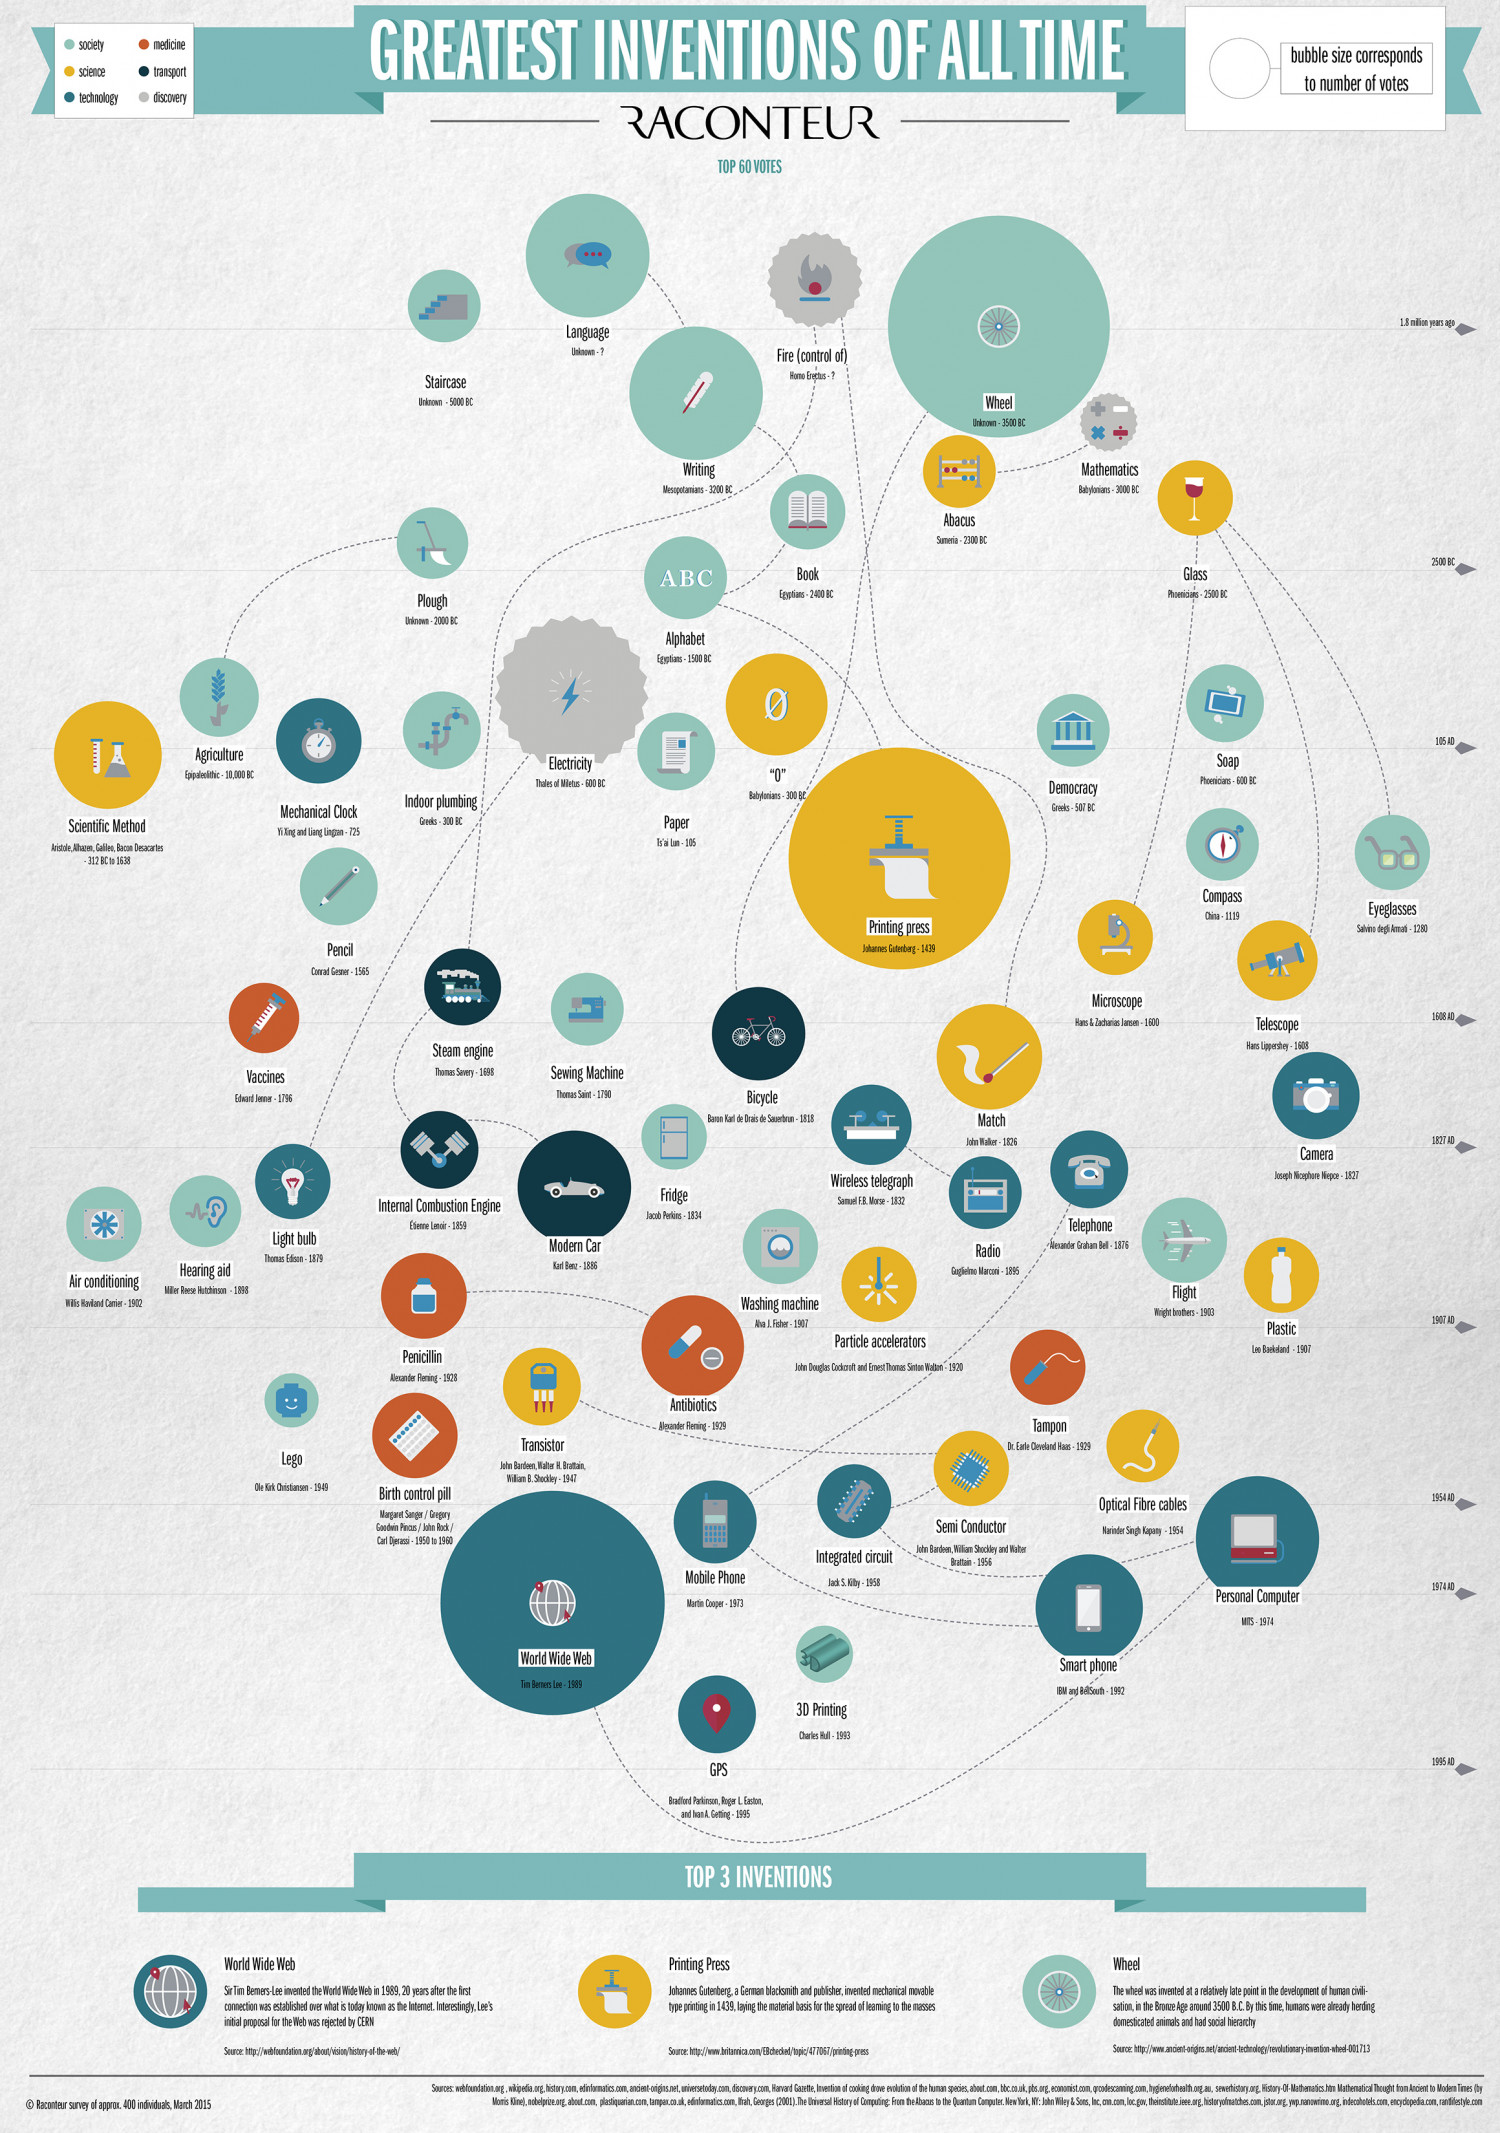 the greatest invention ever What inventions changed the world raconteur polled 400 industry experts to find the greatest inventions of all time, and made this infographic.